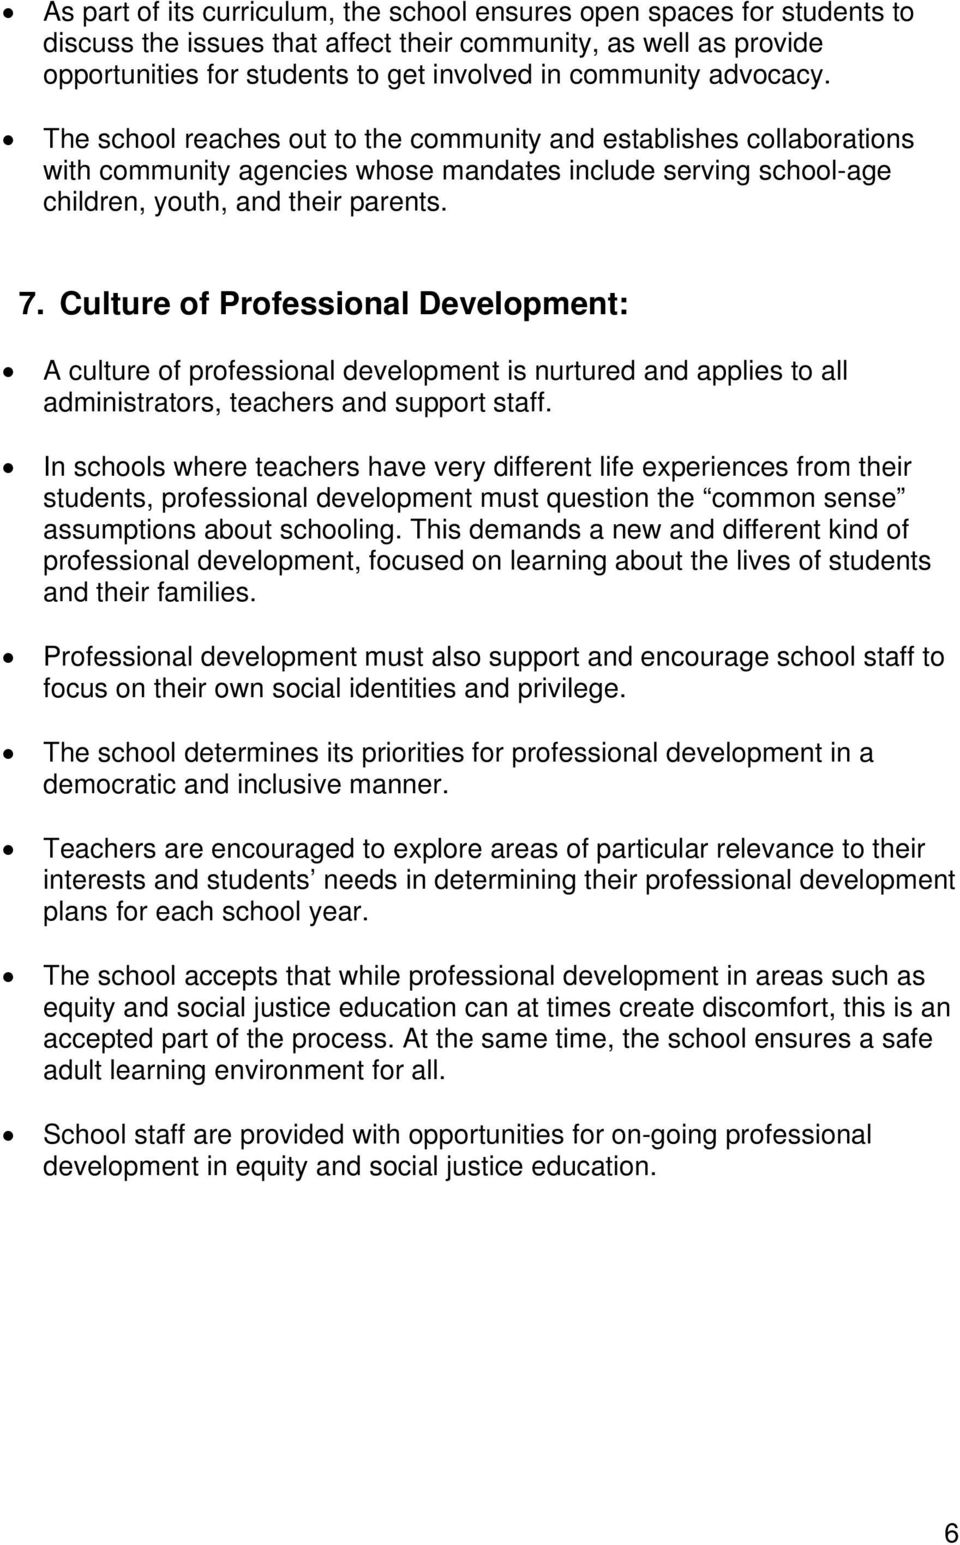 Culture of Professional Development: A culture of professional development is nurtured and applies to all administrators, teachers and support staff.